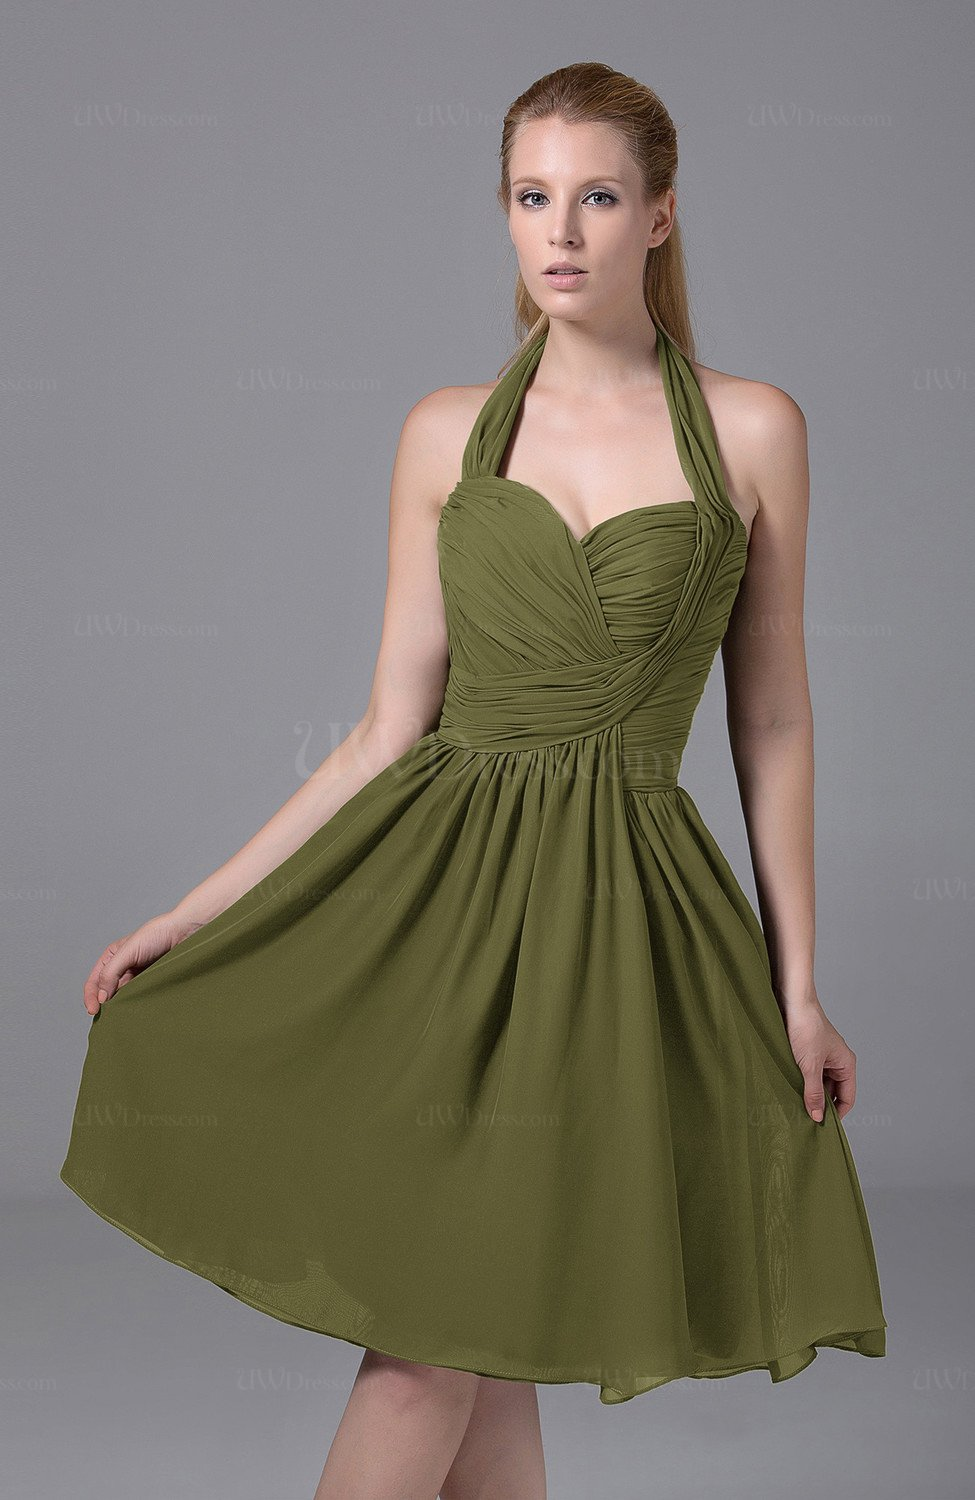 b40180957a9 Olive Green Modest Halter Sleeveless Chiffon Knee Length Ruching Party  Dresses (Style D43227)